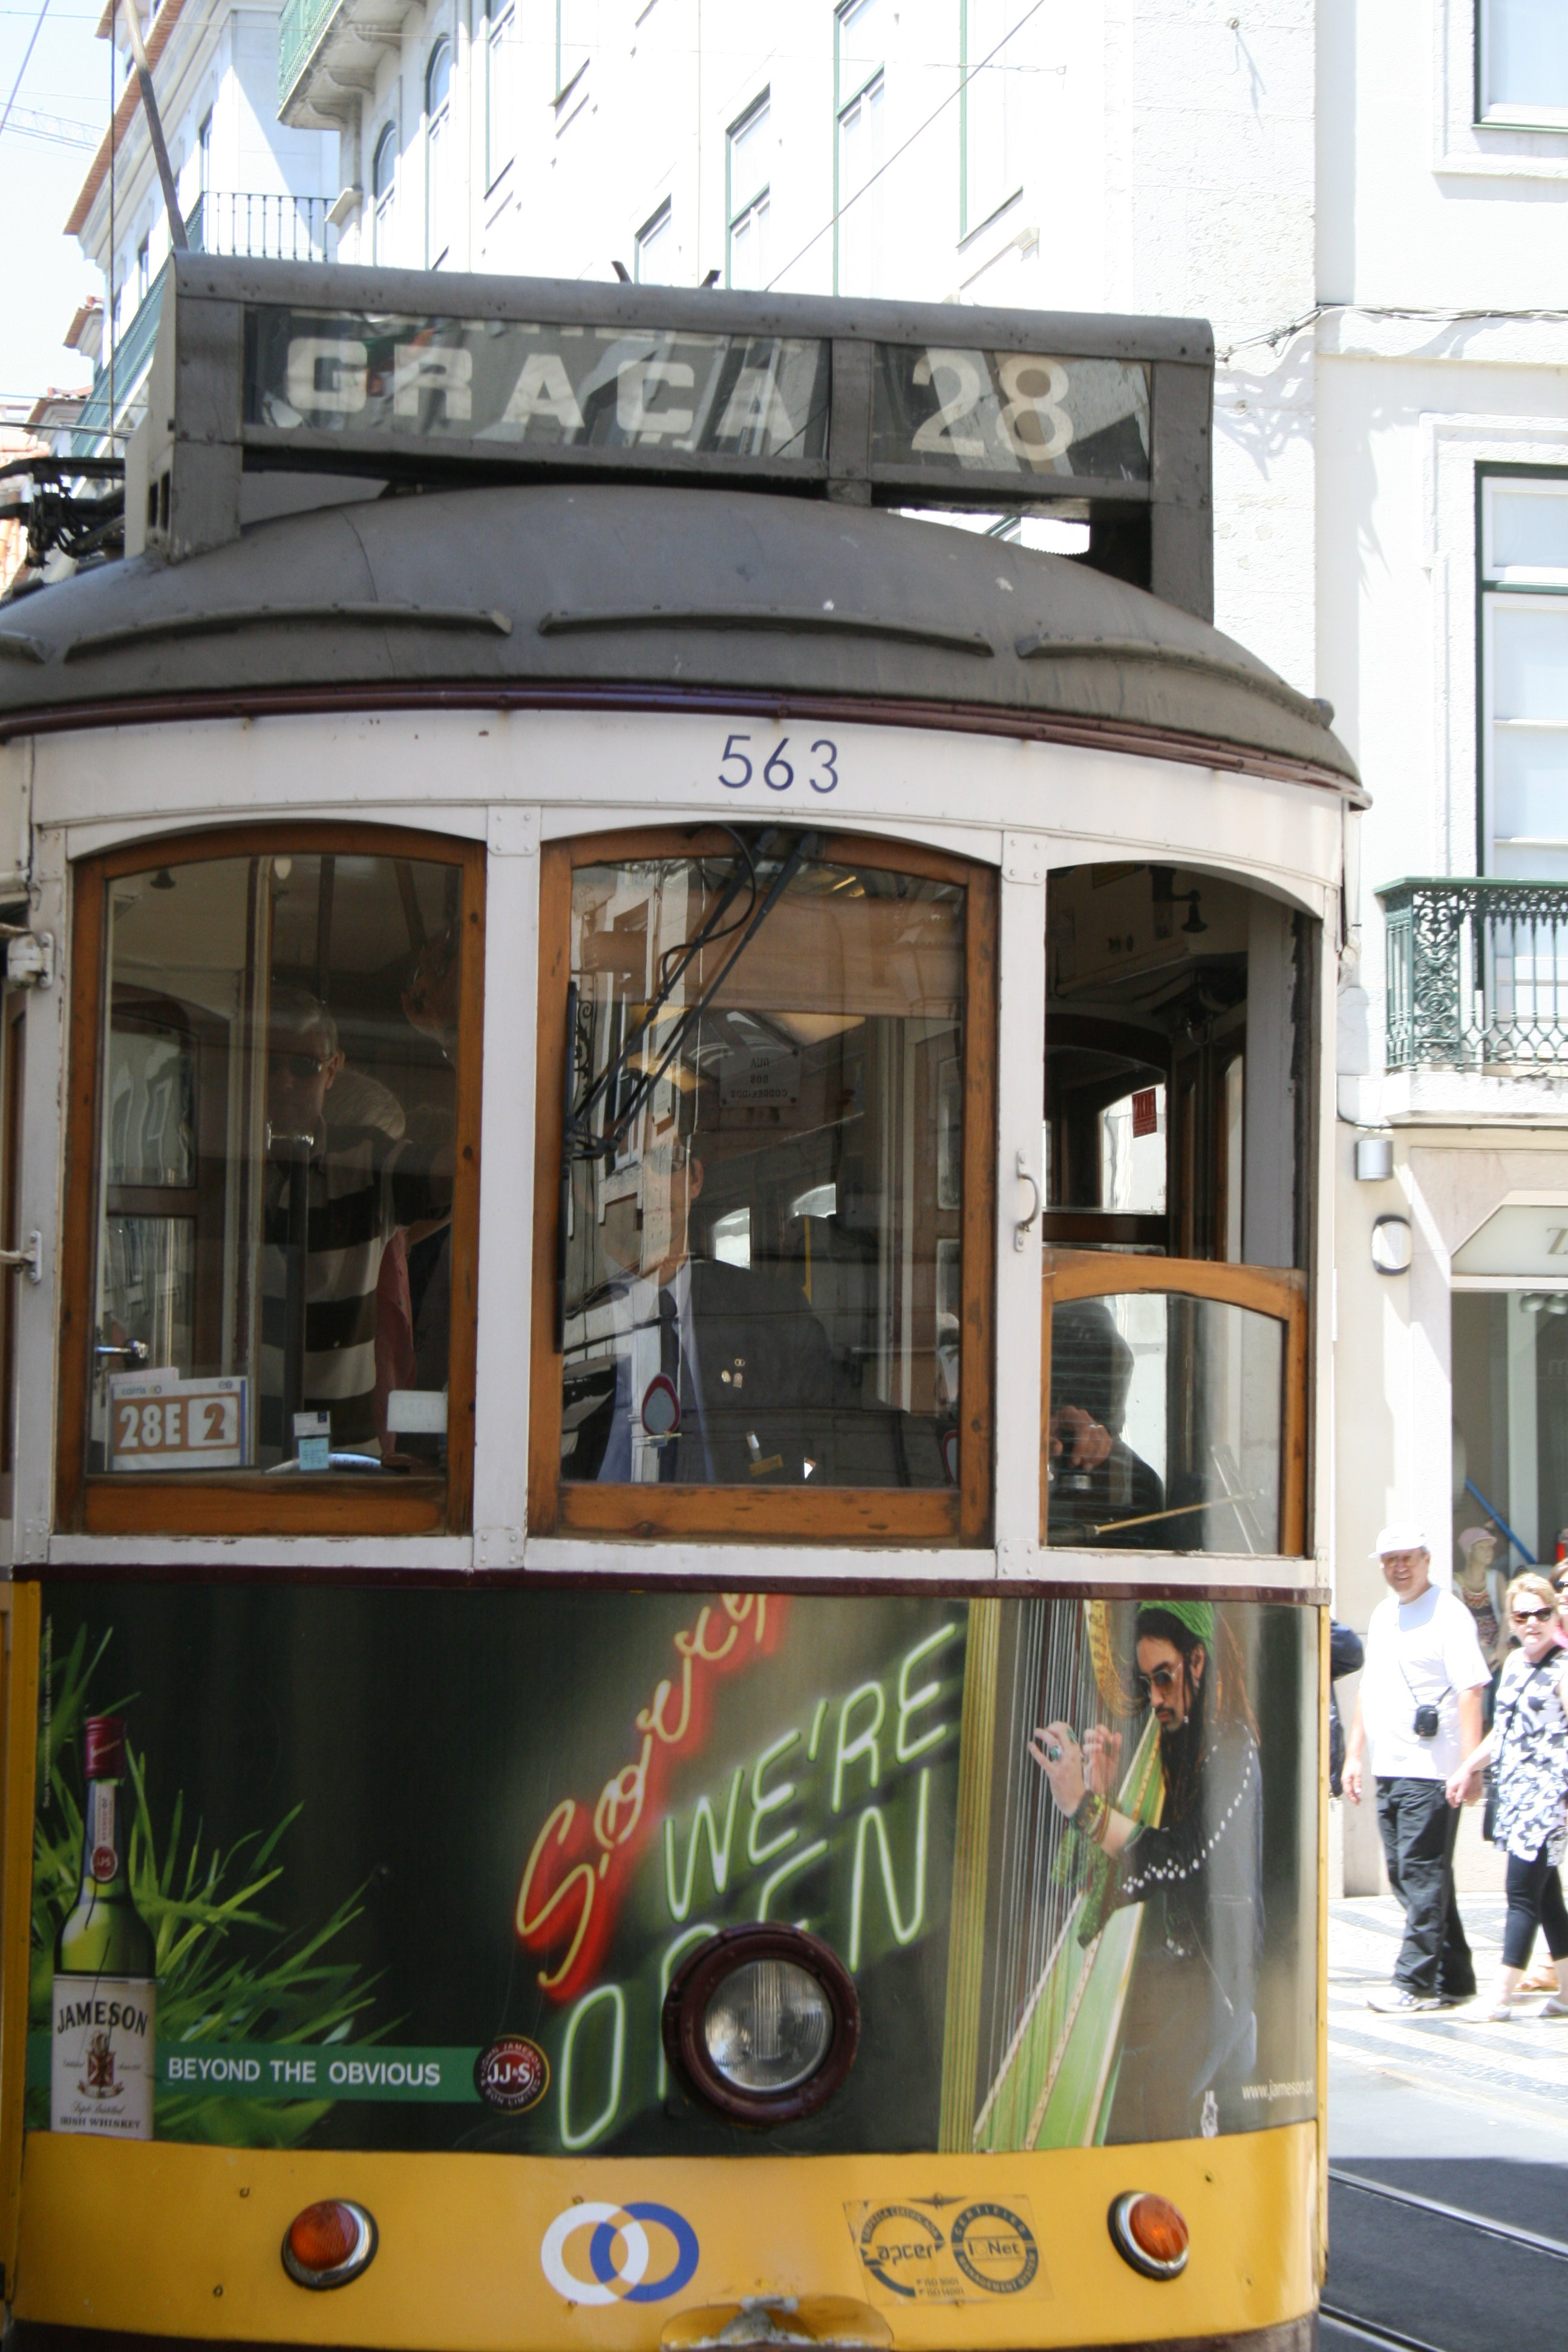 Cable Car in Tram 28